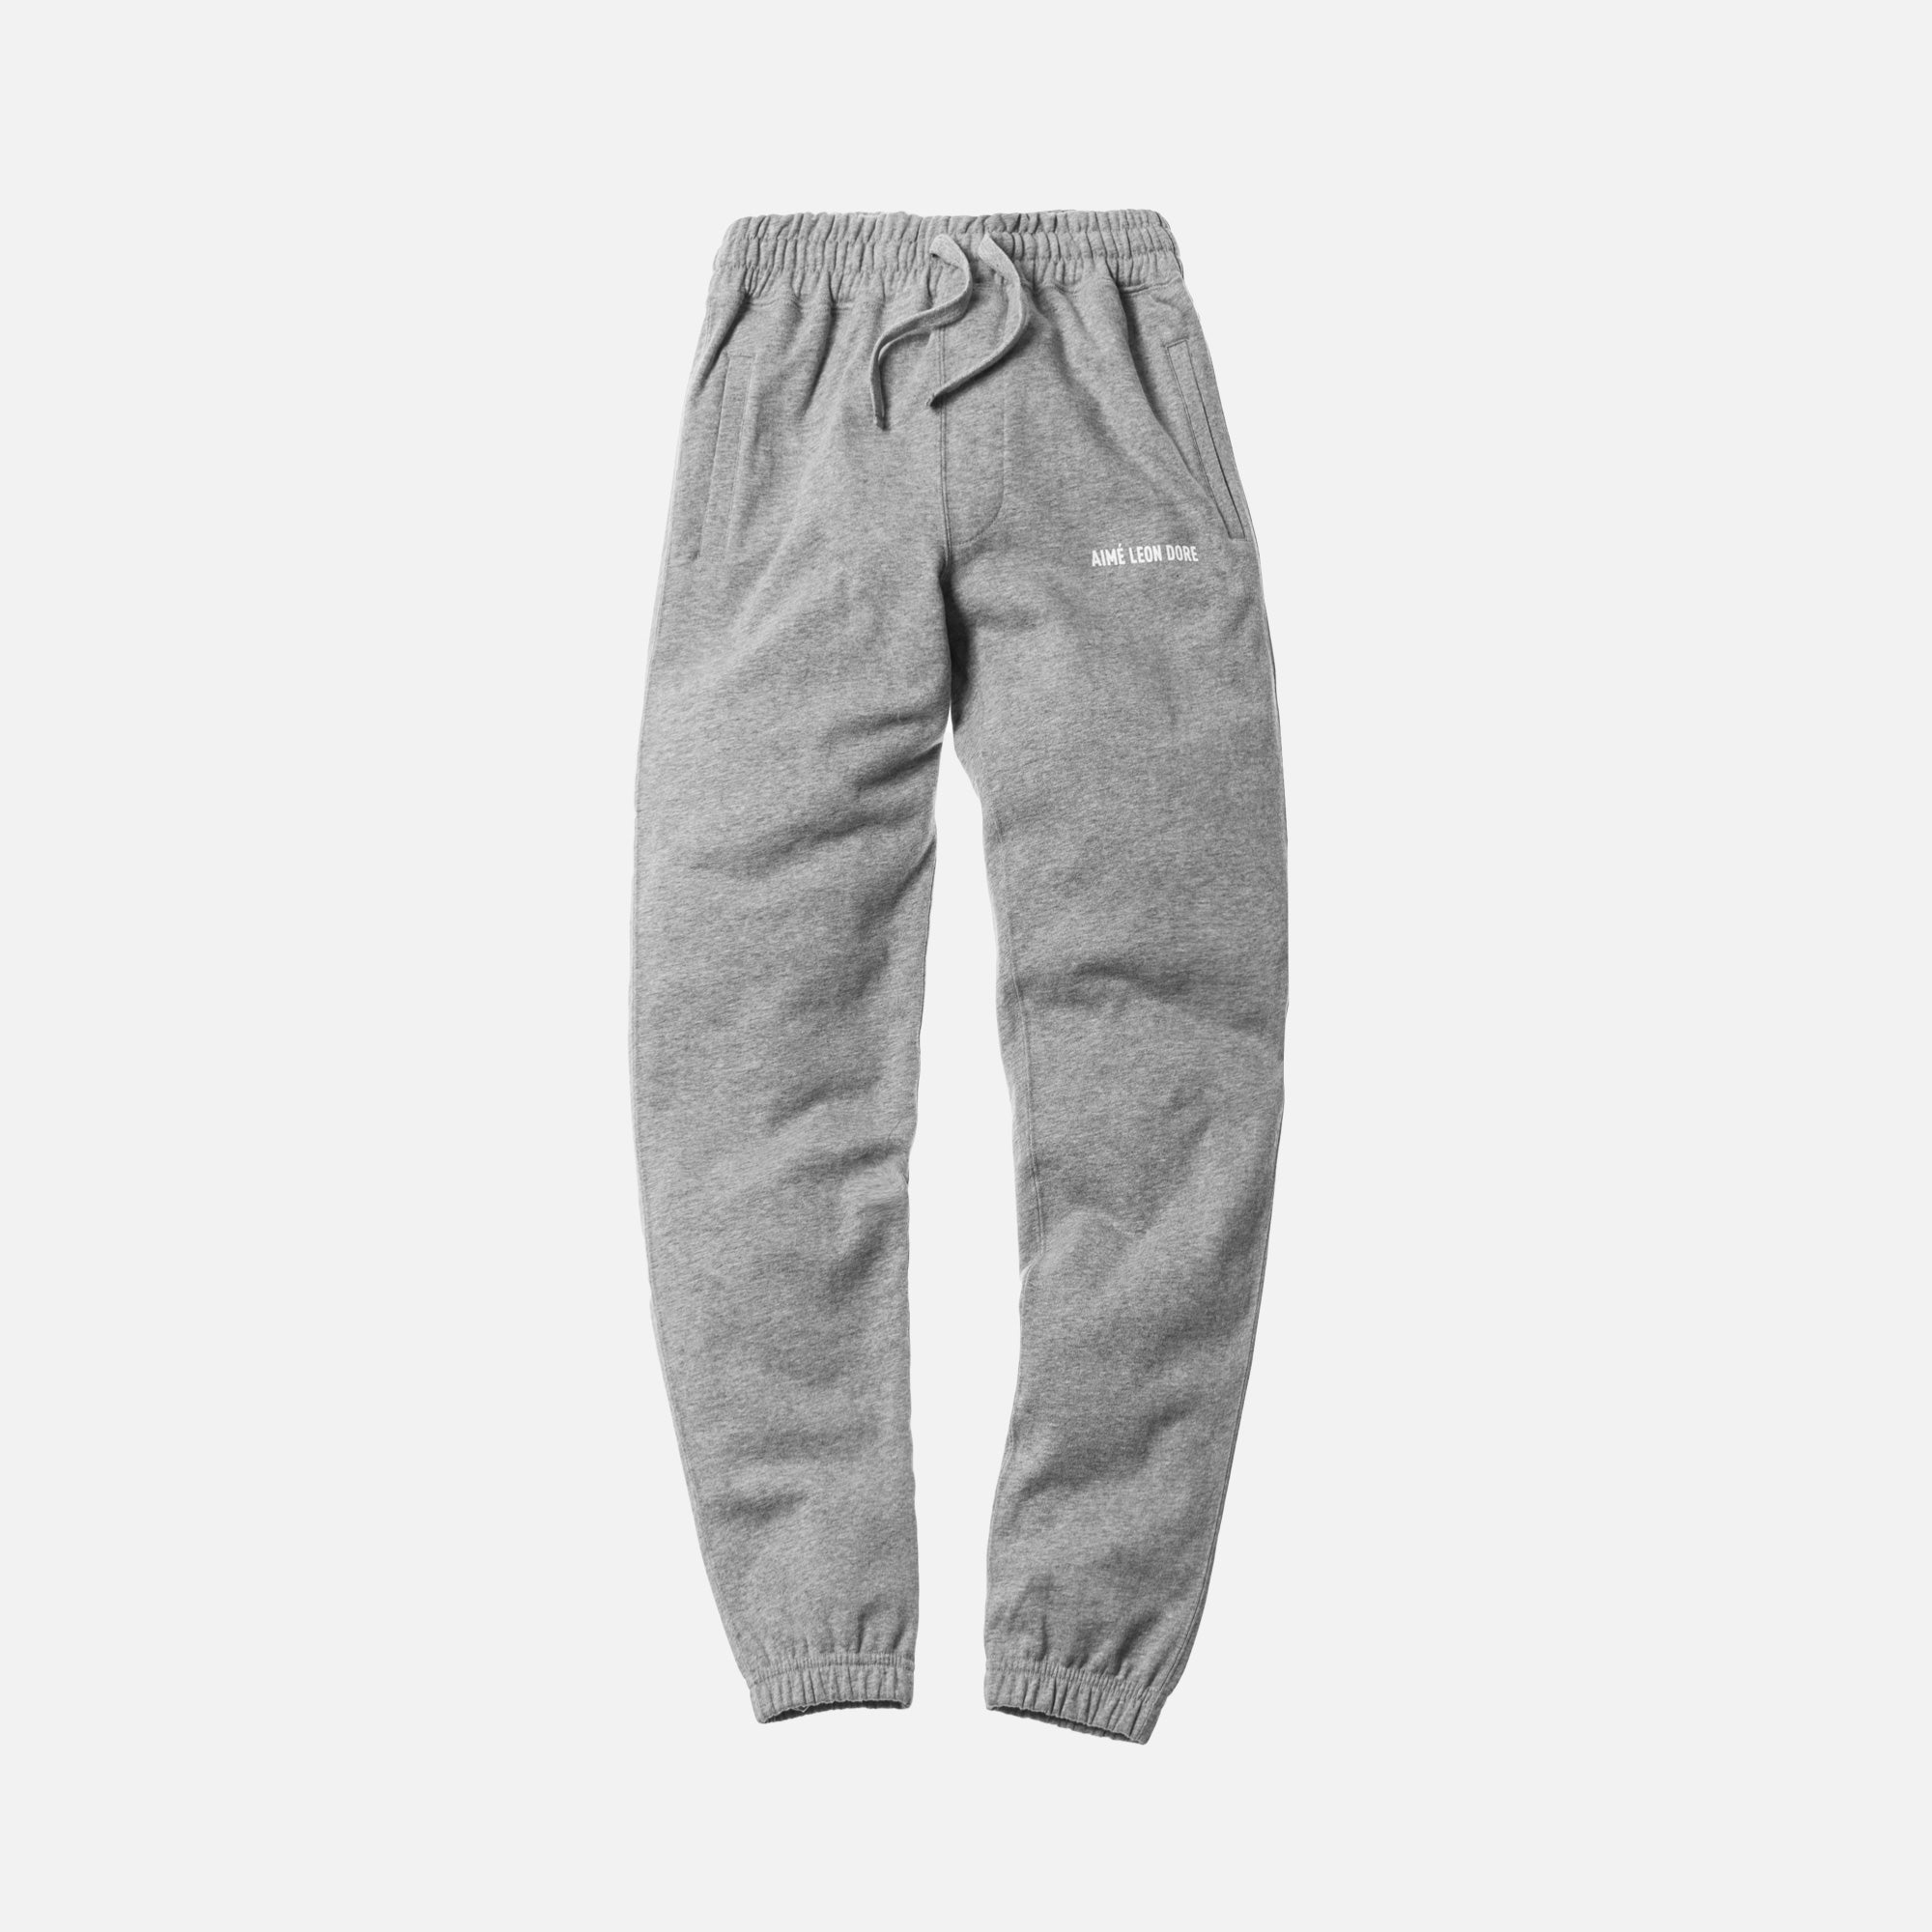 Grey Logo Camper Lounge Pants Aimé Leon Dore Store With Big Discount Discount Factory Outlet Clearance Supply Clearance Cheapest Online A5iMBhnx4